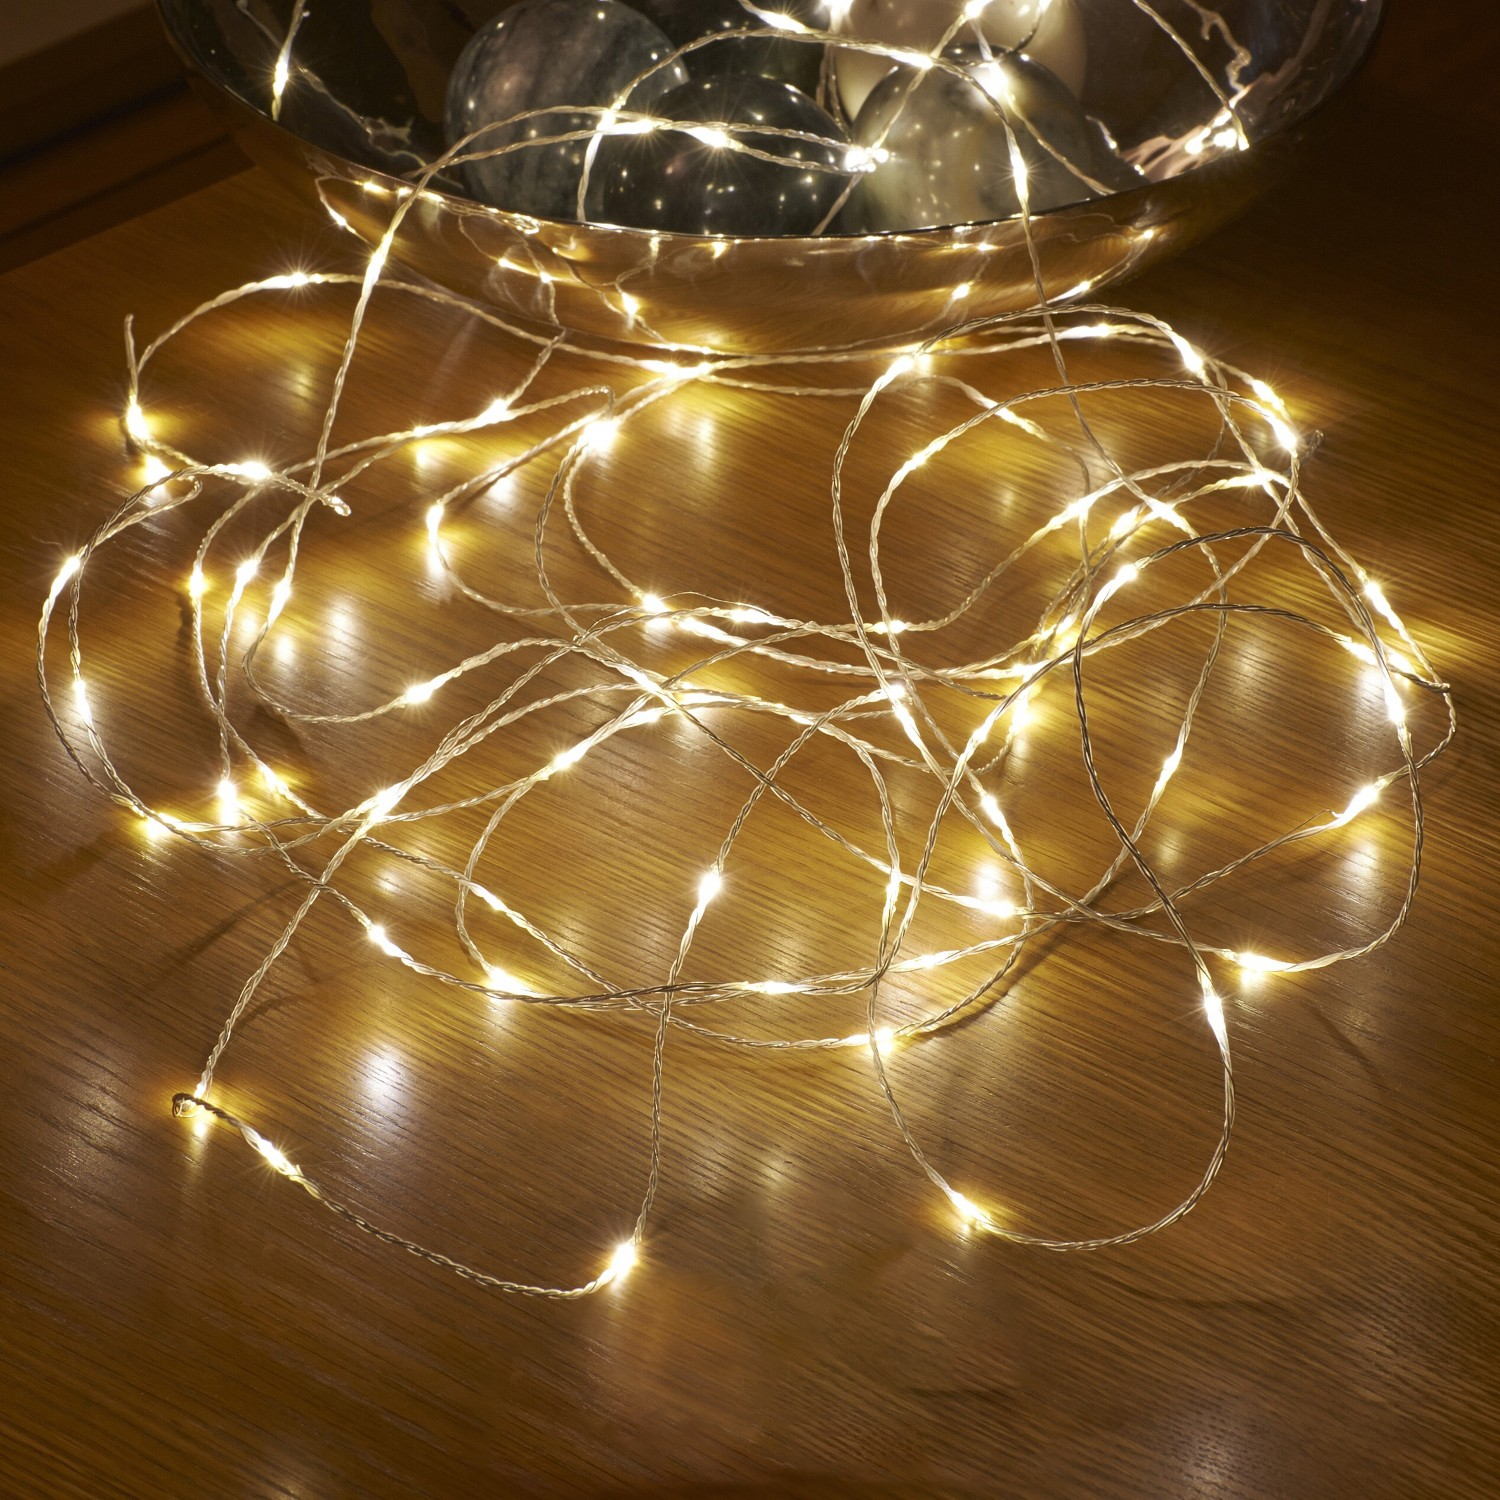 Micro led string lights battery operated remote controlled micro led string lights battery operated remote controlled outdoor 5m mozeypictures Image collections